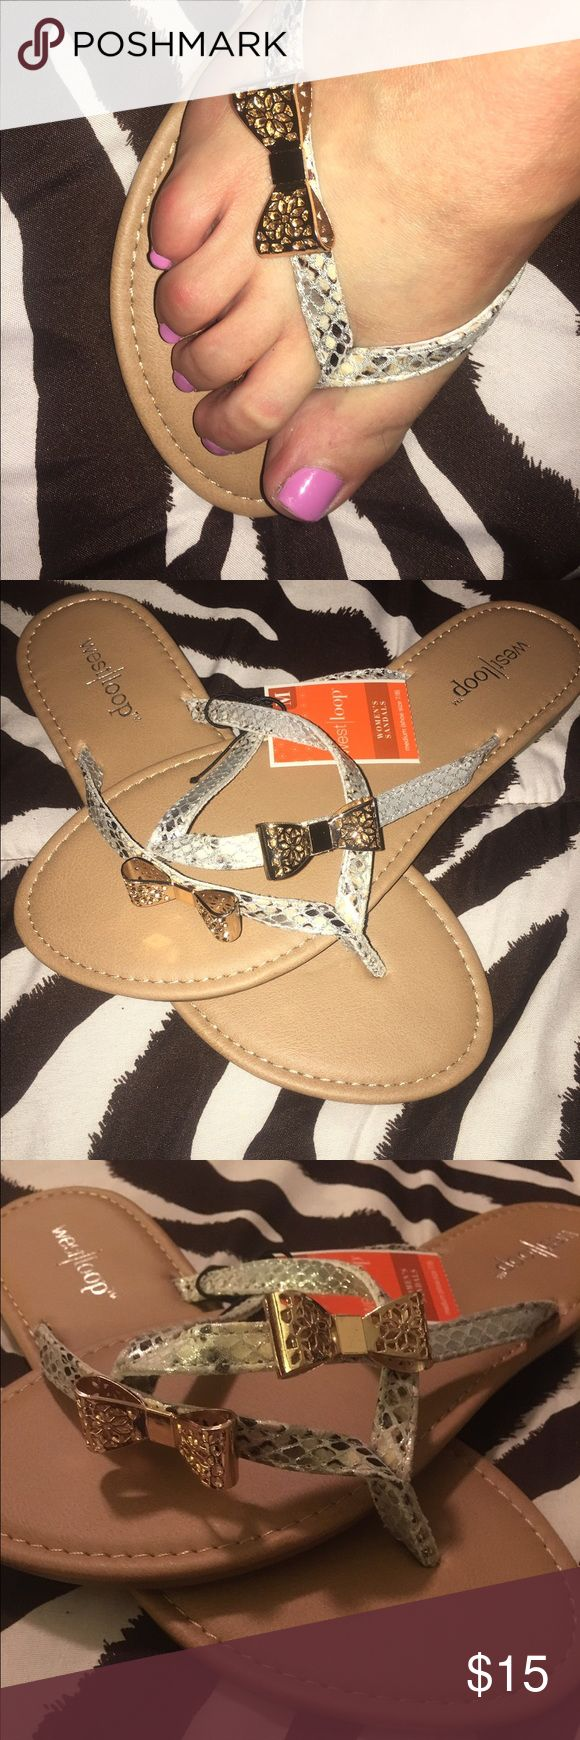 Size Medium 7/8 Dressy Sandals w/Bows Adorable Gold Bows set these sandals a step ahead of the rest. Dressy or Casual Shoes Sandals